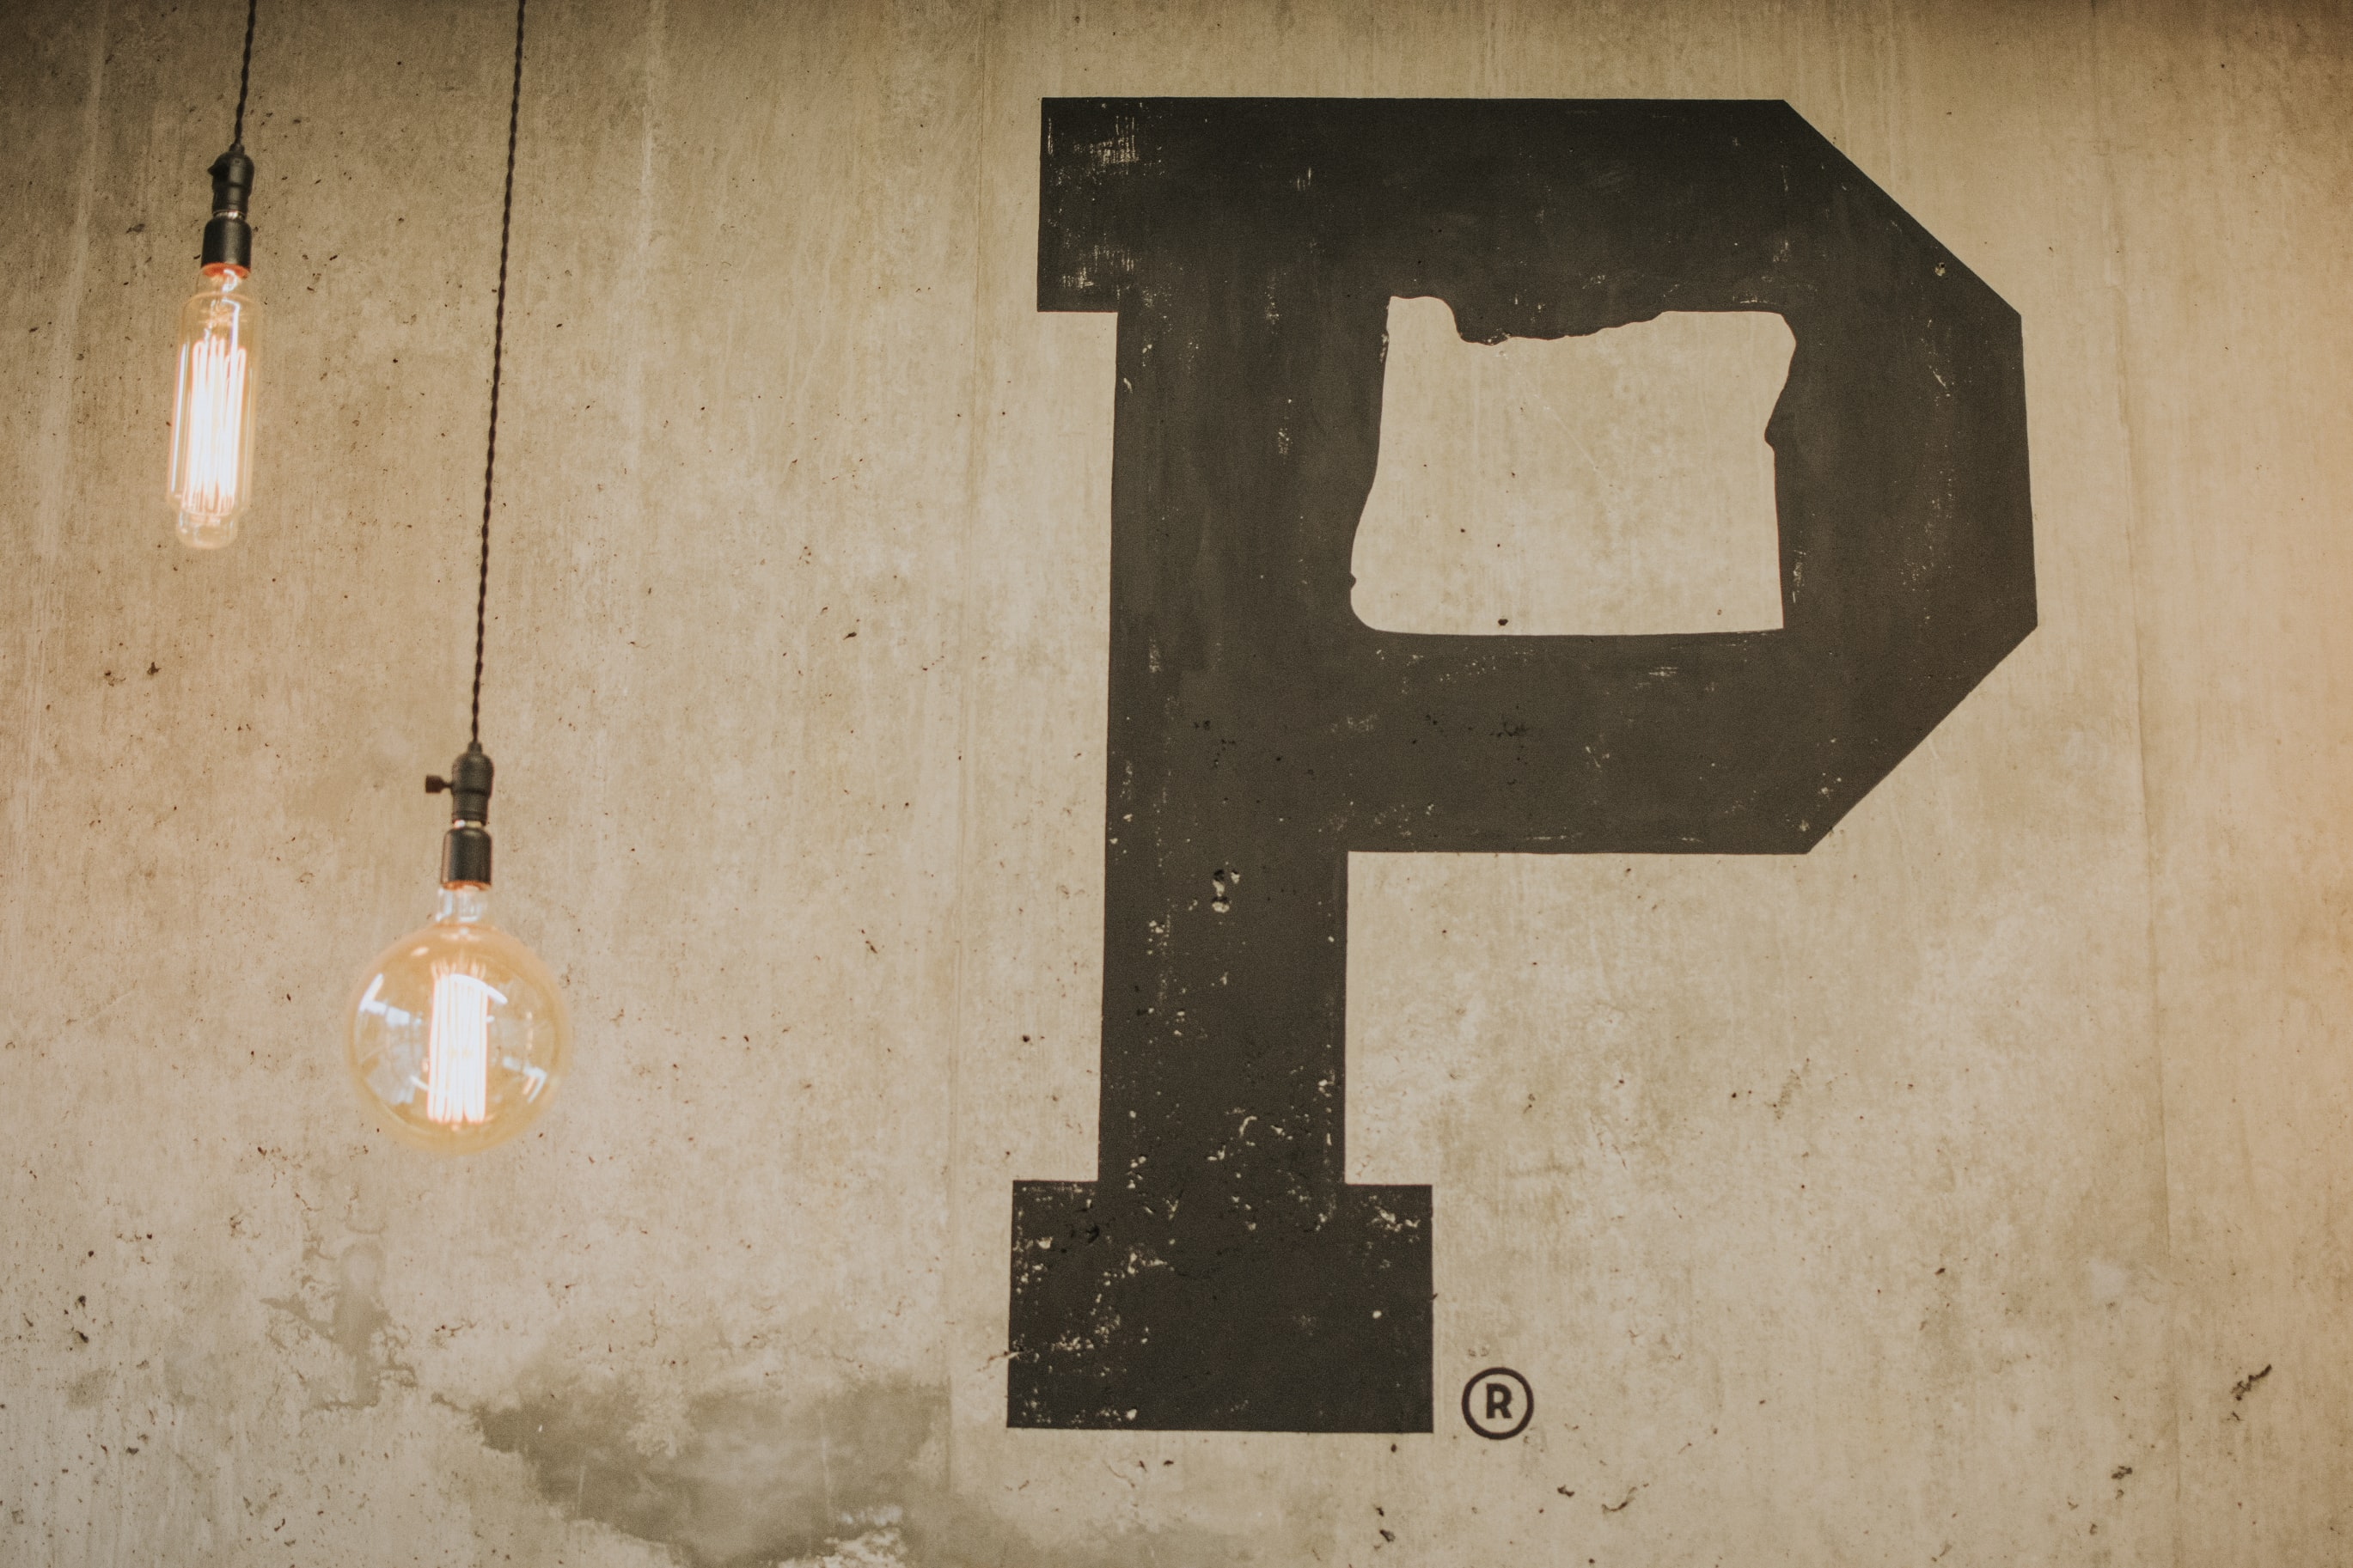 two pendant lamp near beige wall with P letter